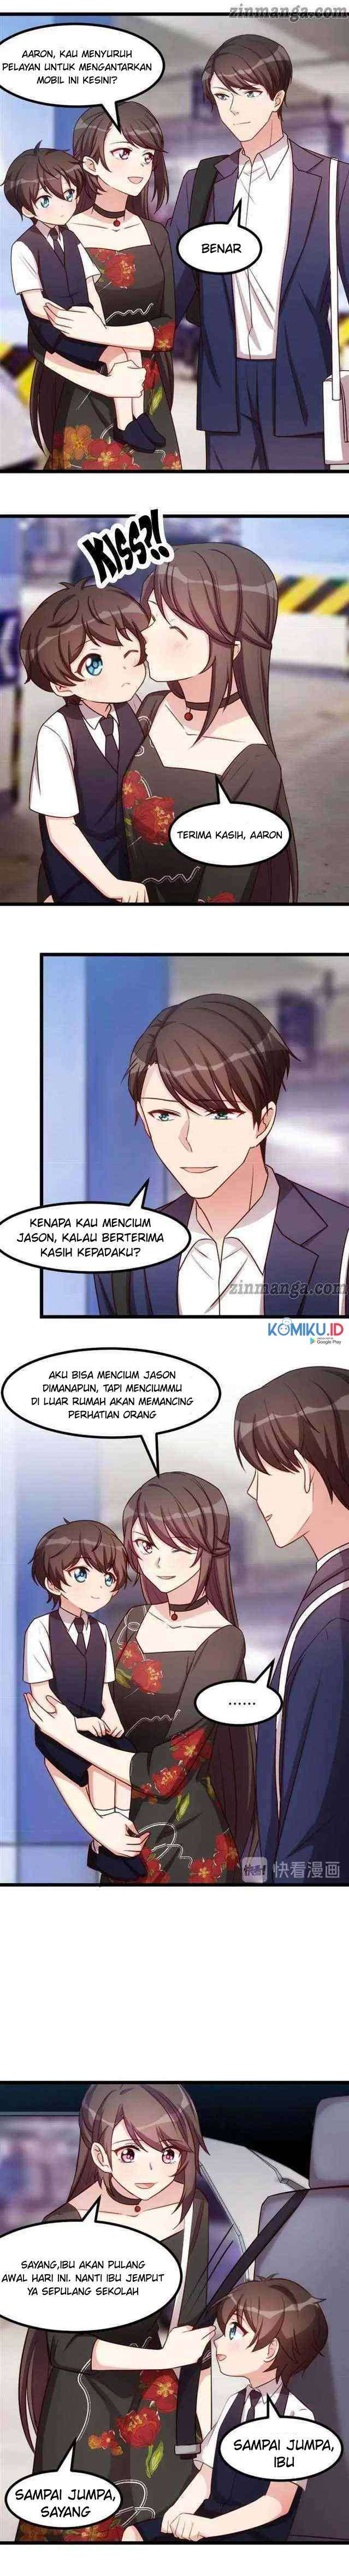 CEO's Sudden Proposal Chapter 231